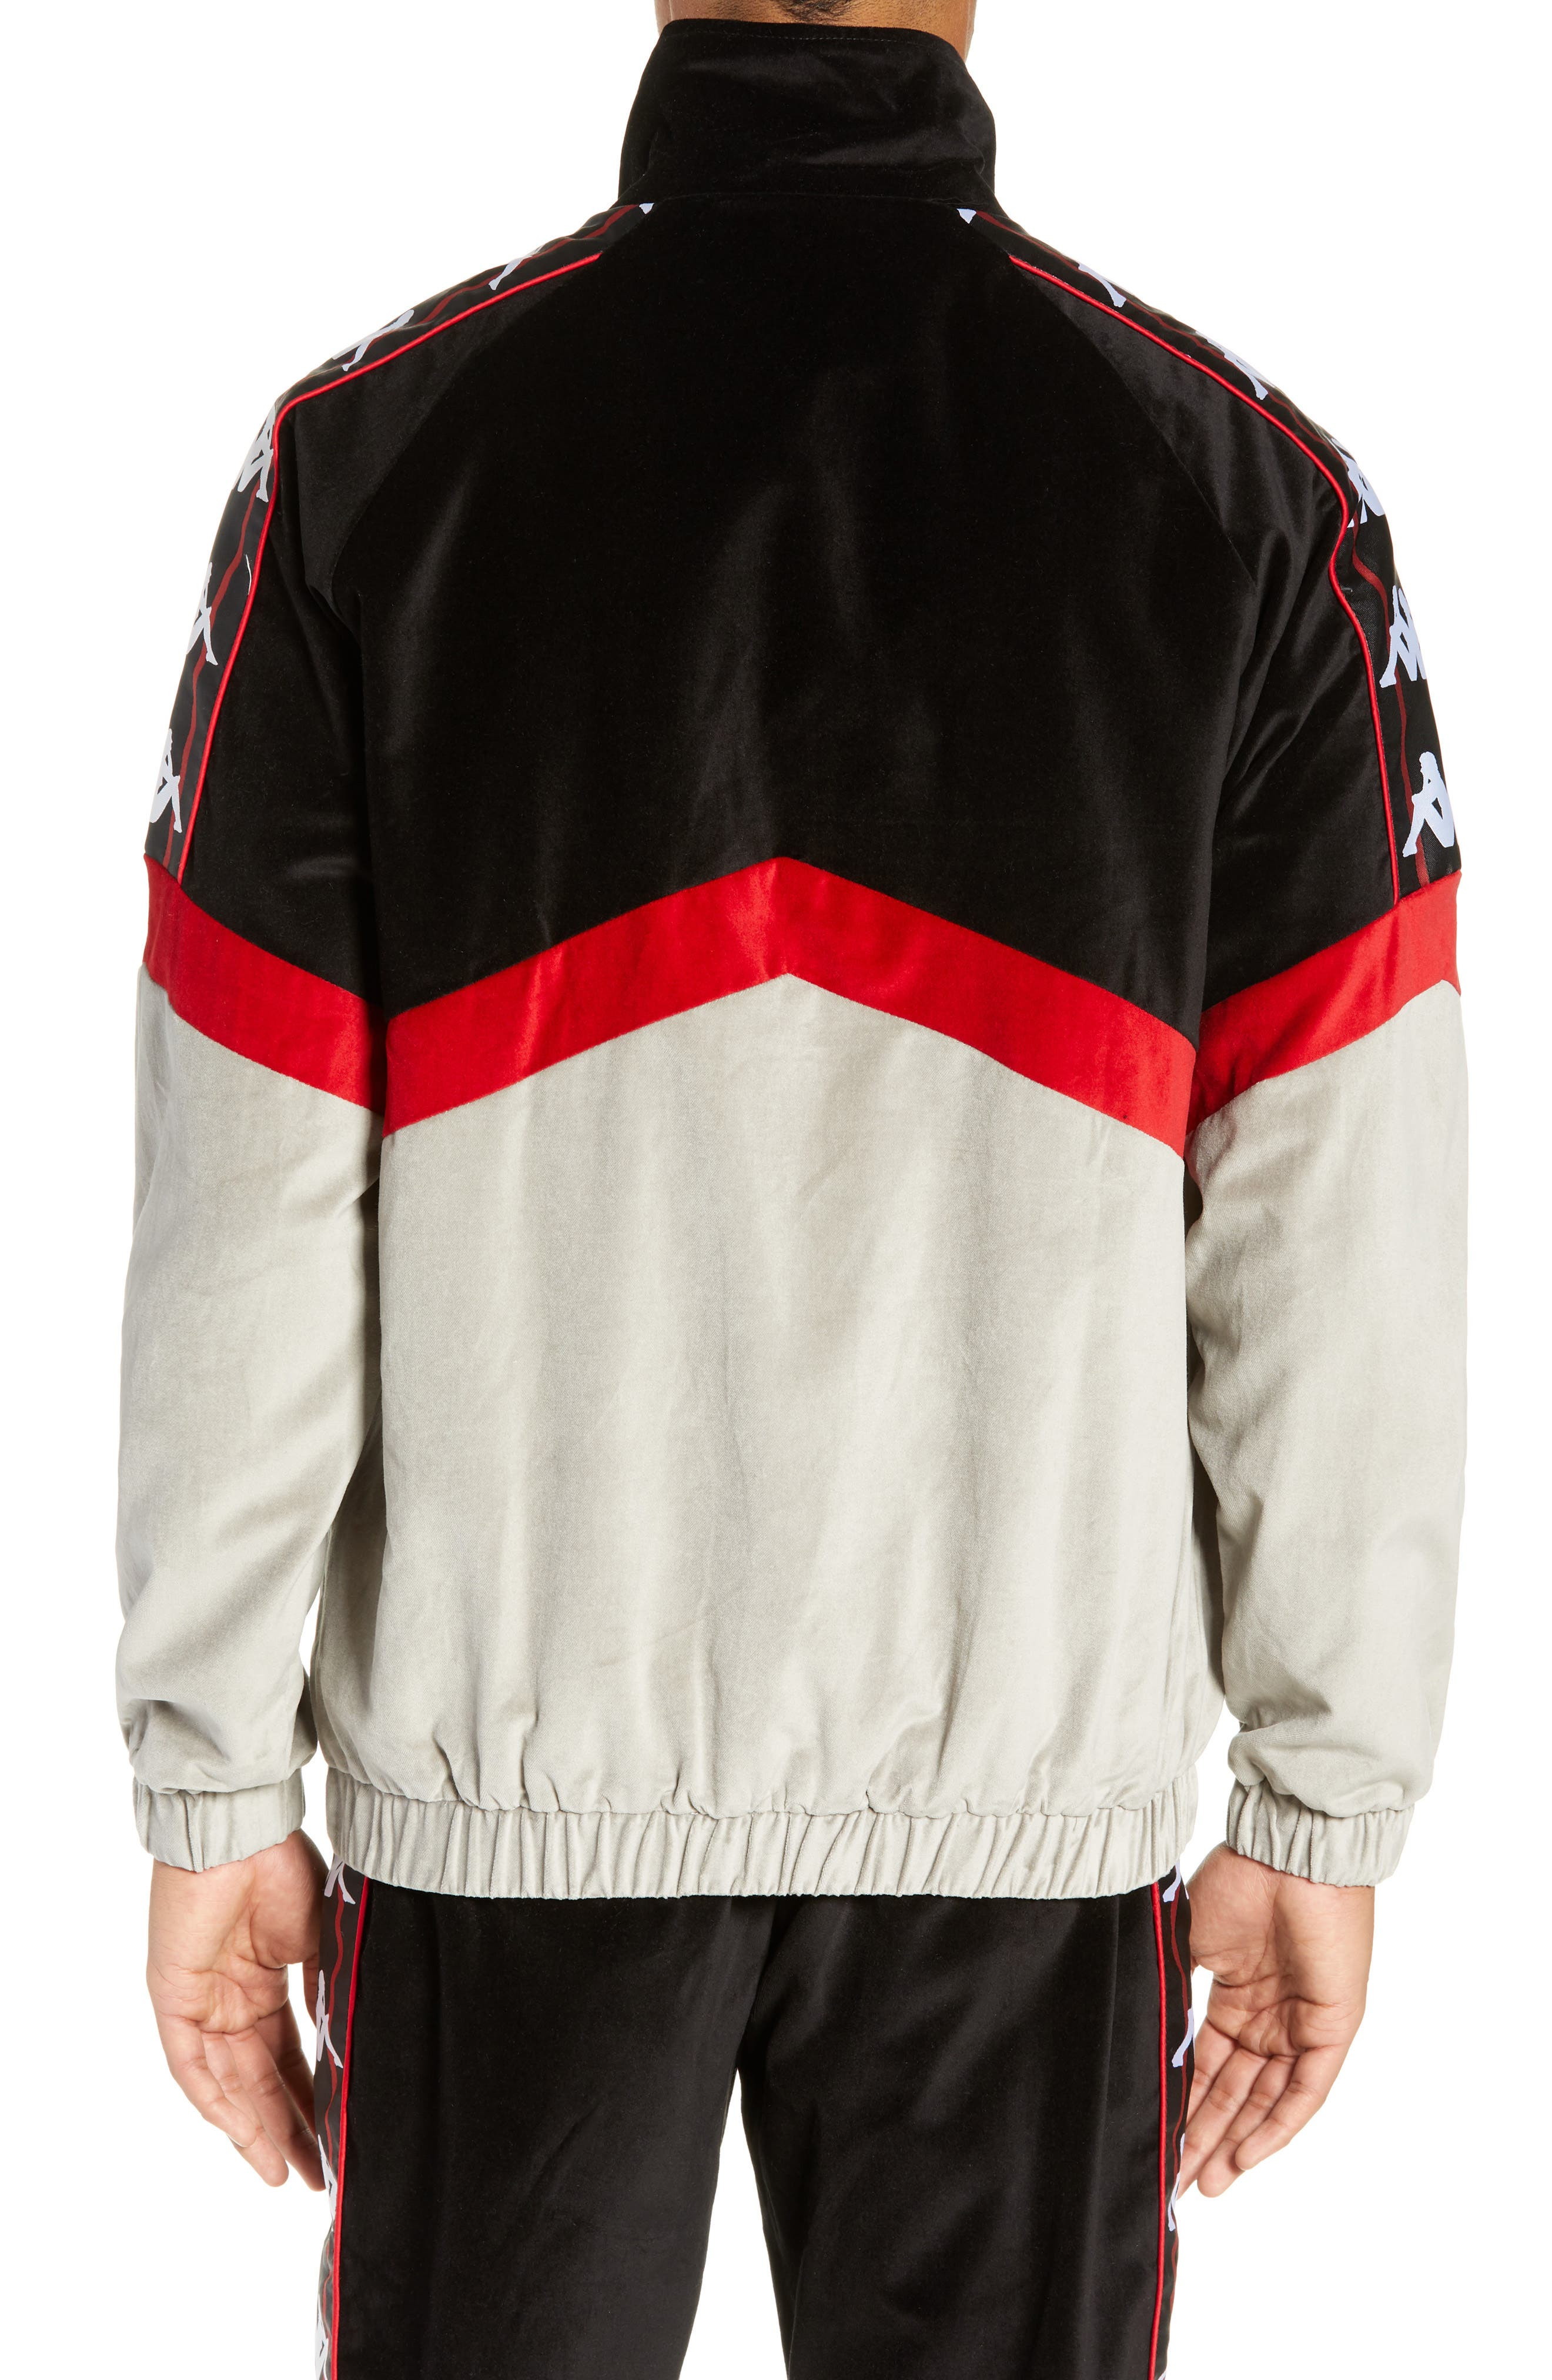 Authentic Cabrini Track Jacket,                             Alternate thumbnail 2, color,                             BLACK/ RED/ GREY